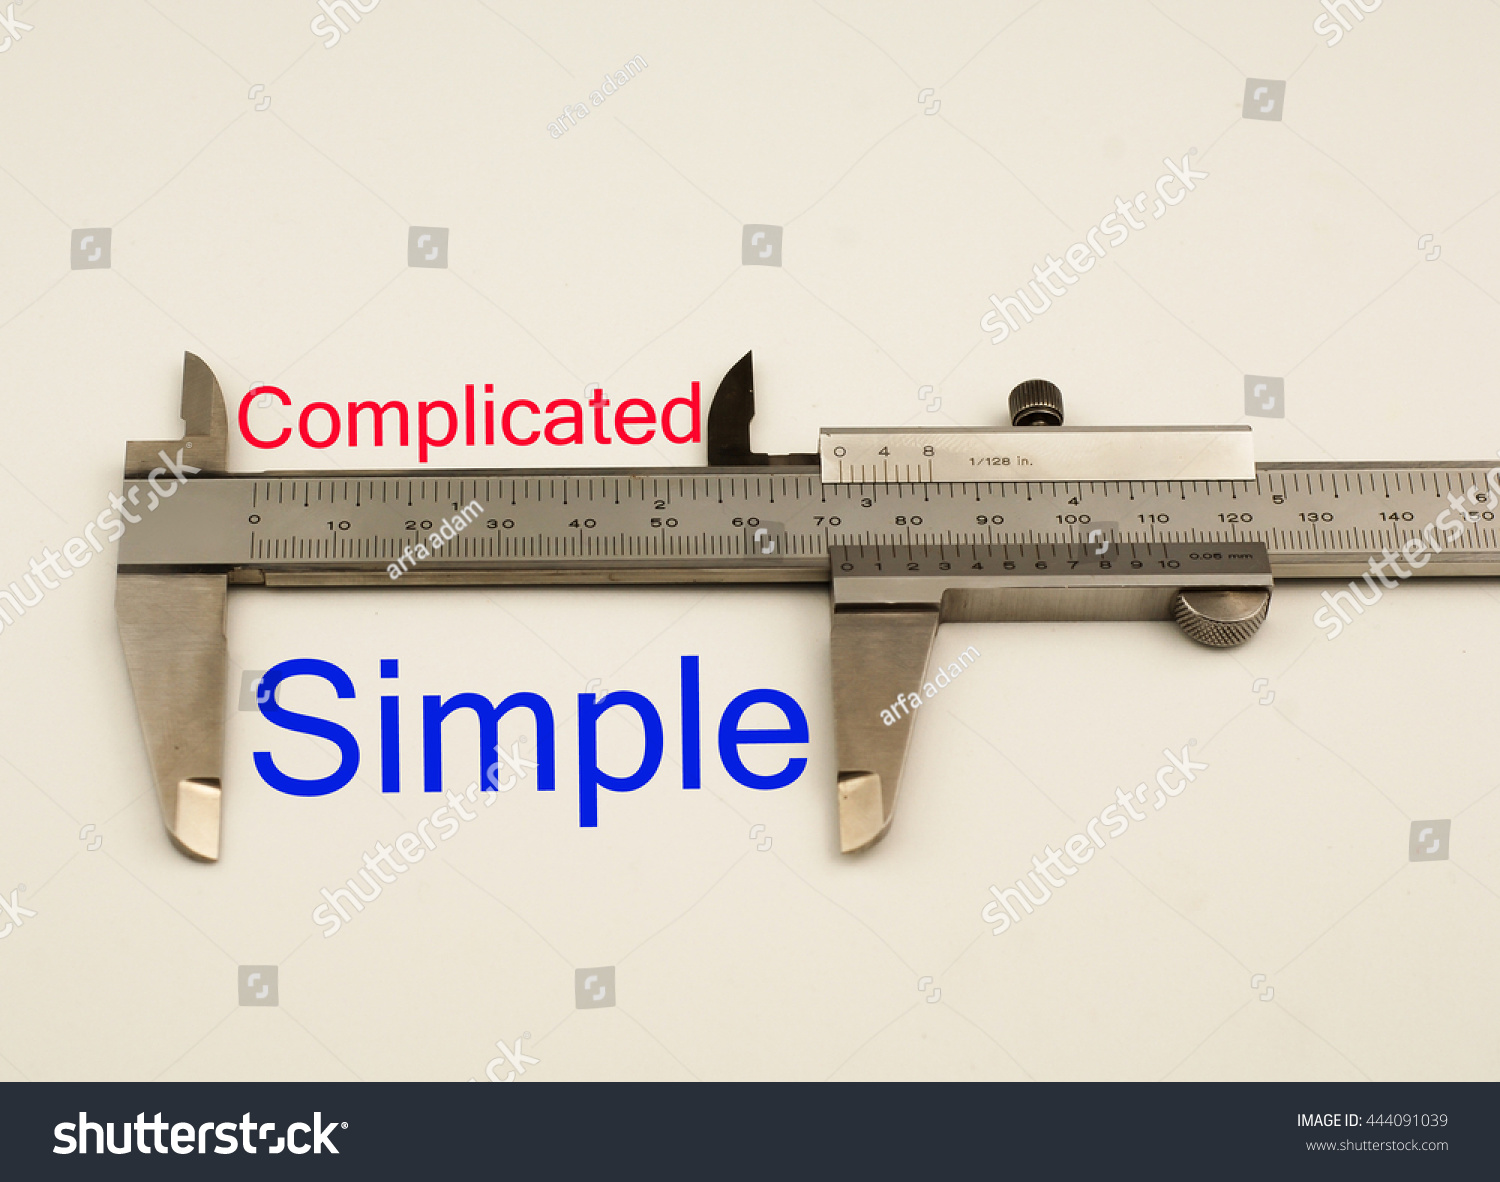 Worksheet Antonym For Simple vernier caliper with word simple vs complicated antonym concept save to a lightbox